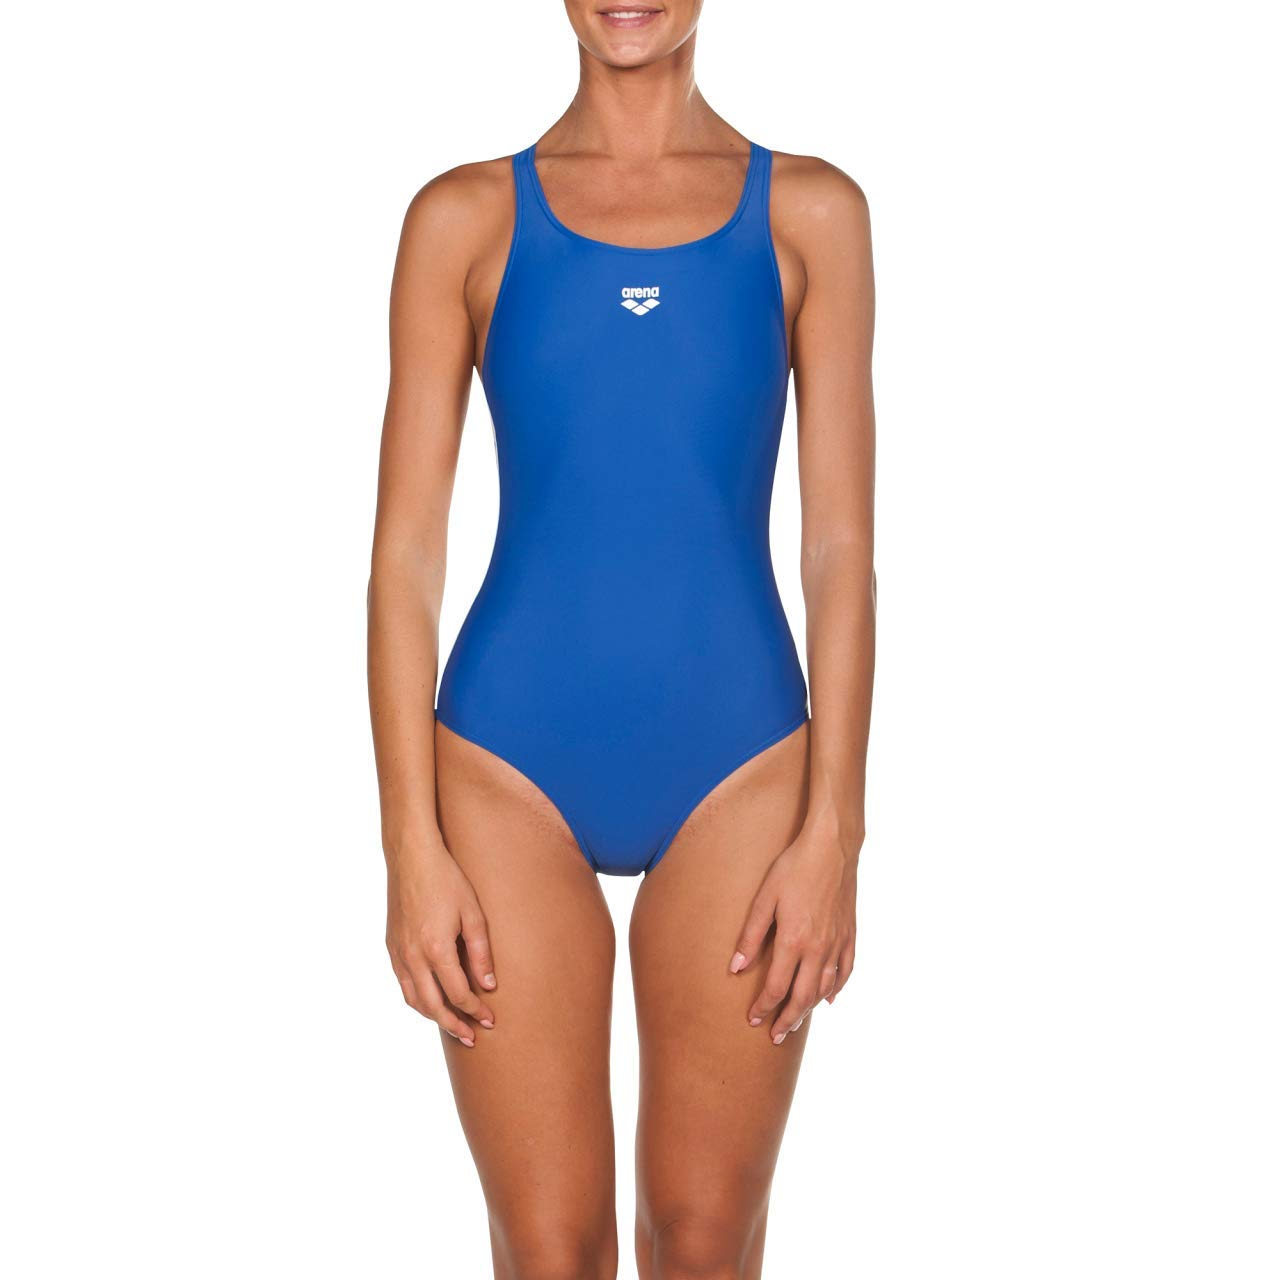 Costume Sportivo Donna ARENA W Team Fit Racer Back One Piece